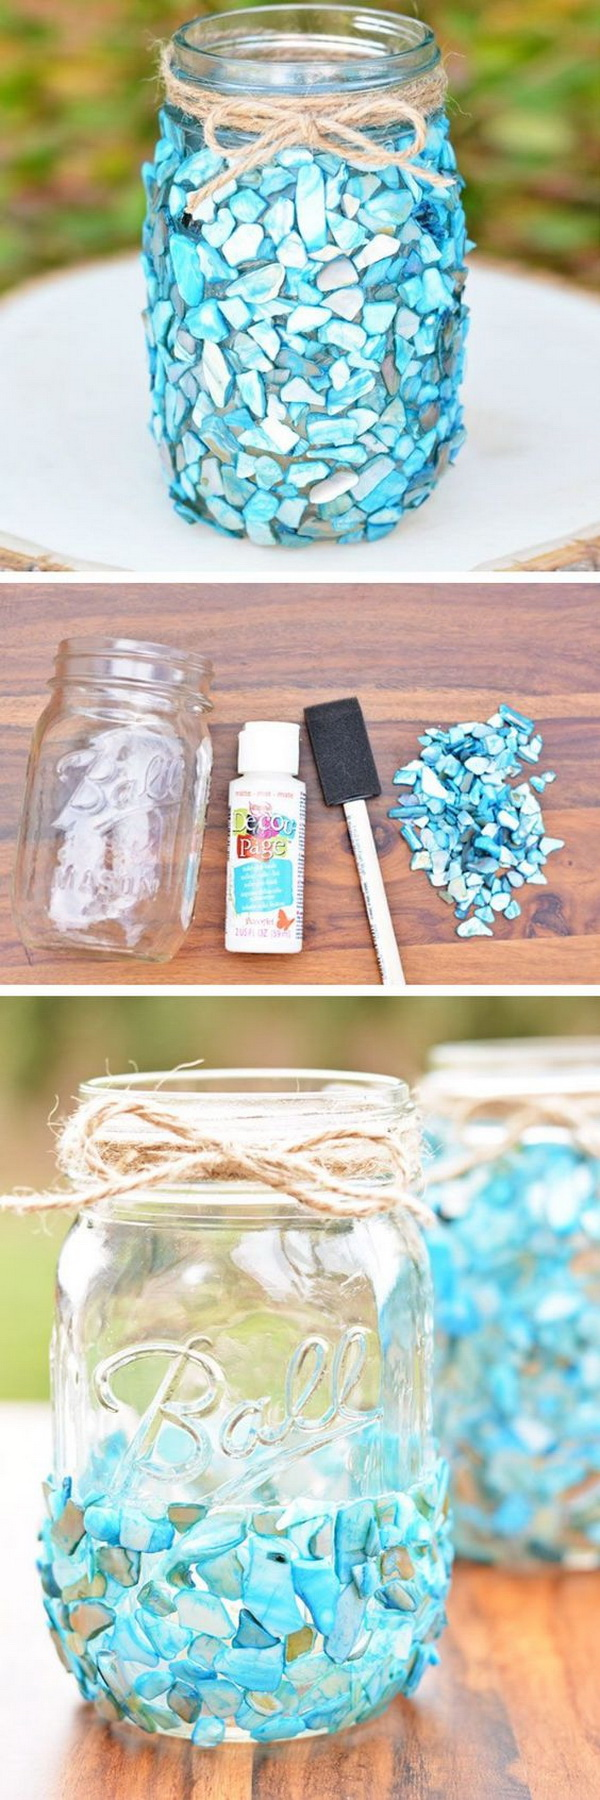 diy mason jar craft ideas 40 creative diy jar projects with tutorials 6465